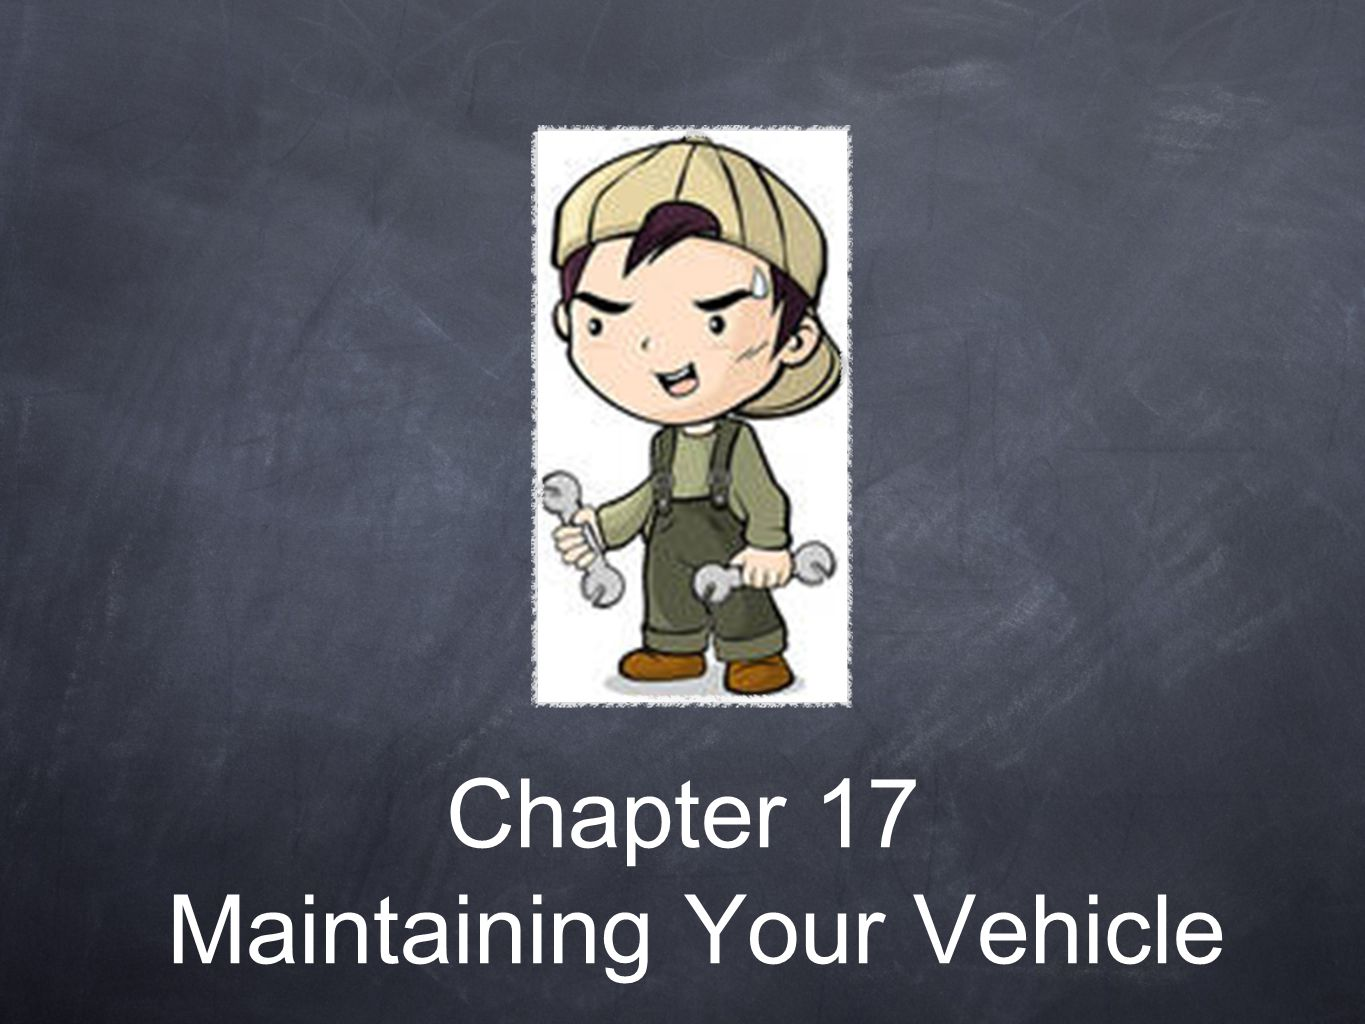 Chapter 17 Maintaining Your Vehicle